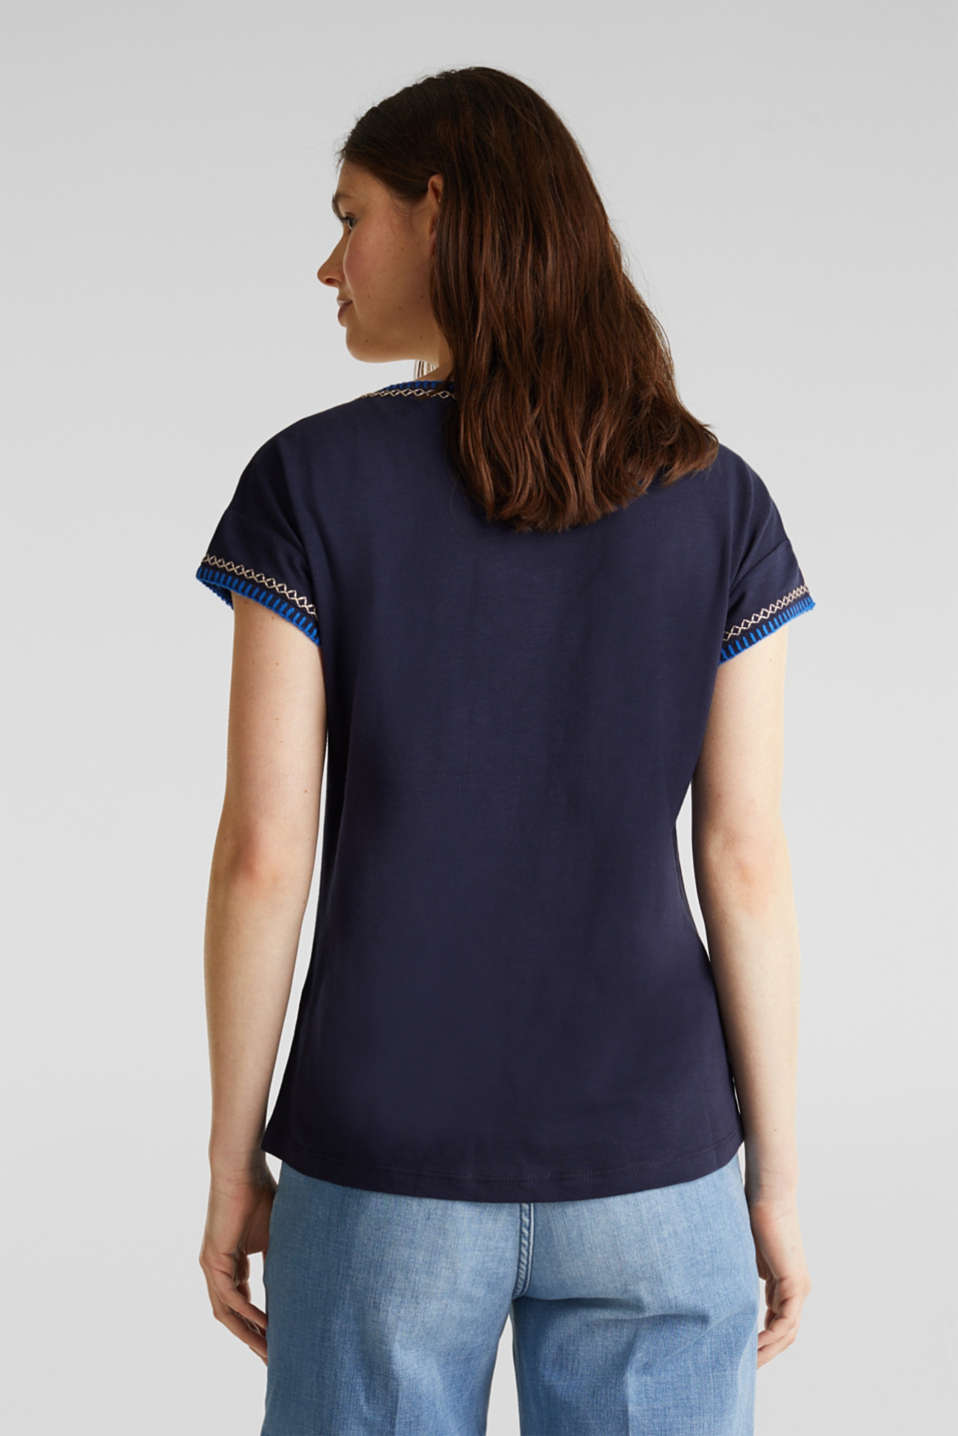 Embroidered top made of organic cotton, NAVY, detail image number 2